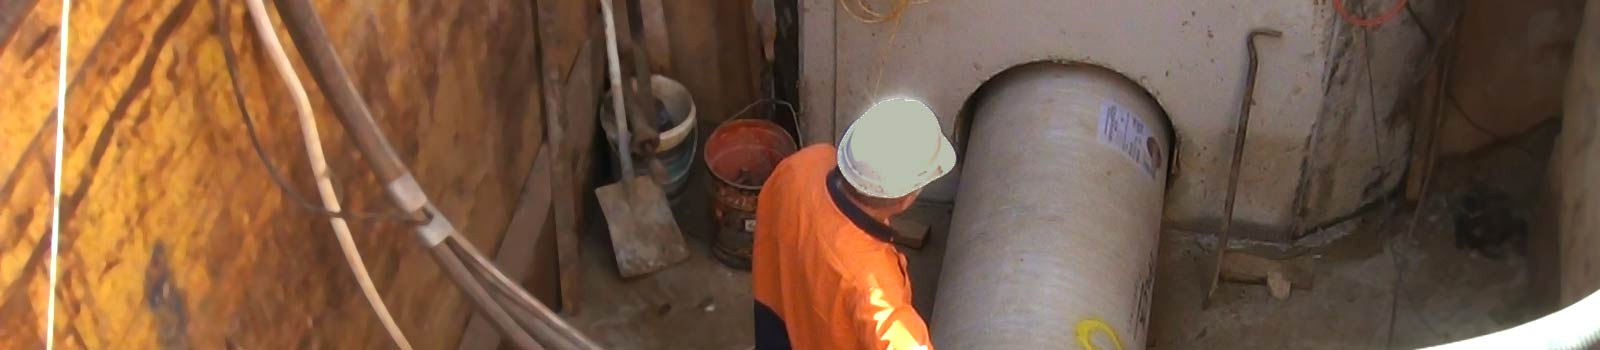 Video: Pipejacking Capability